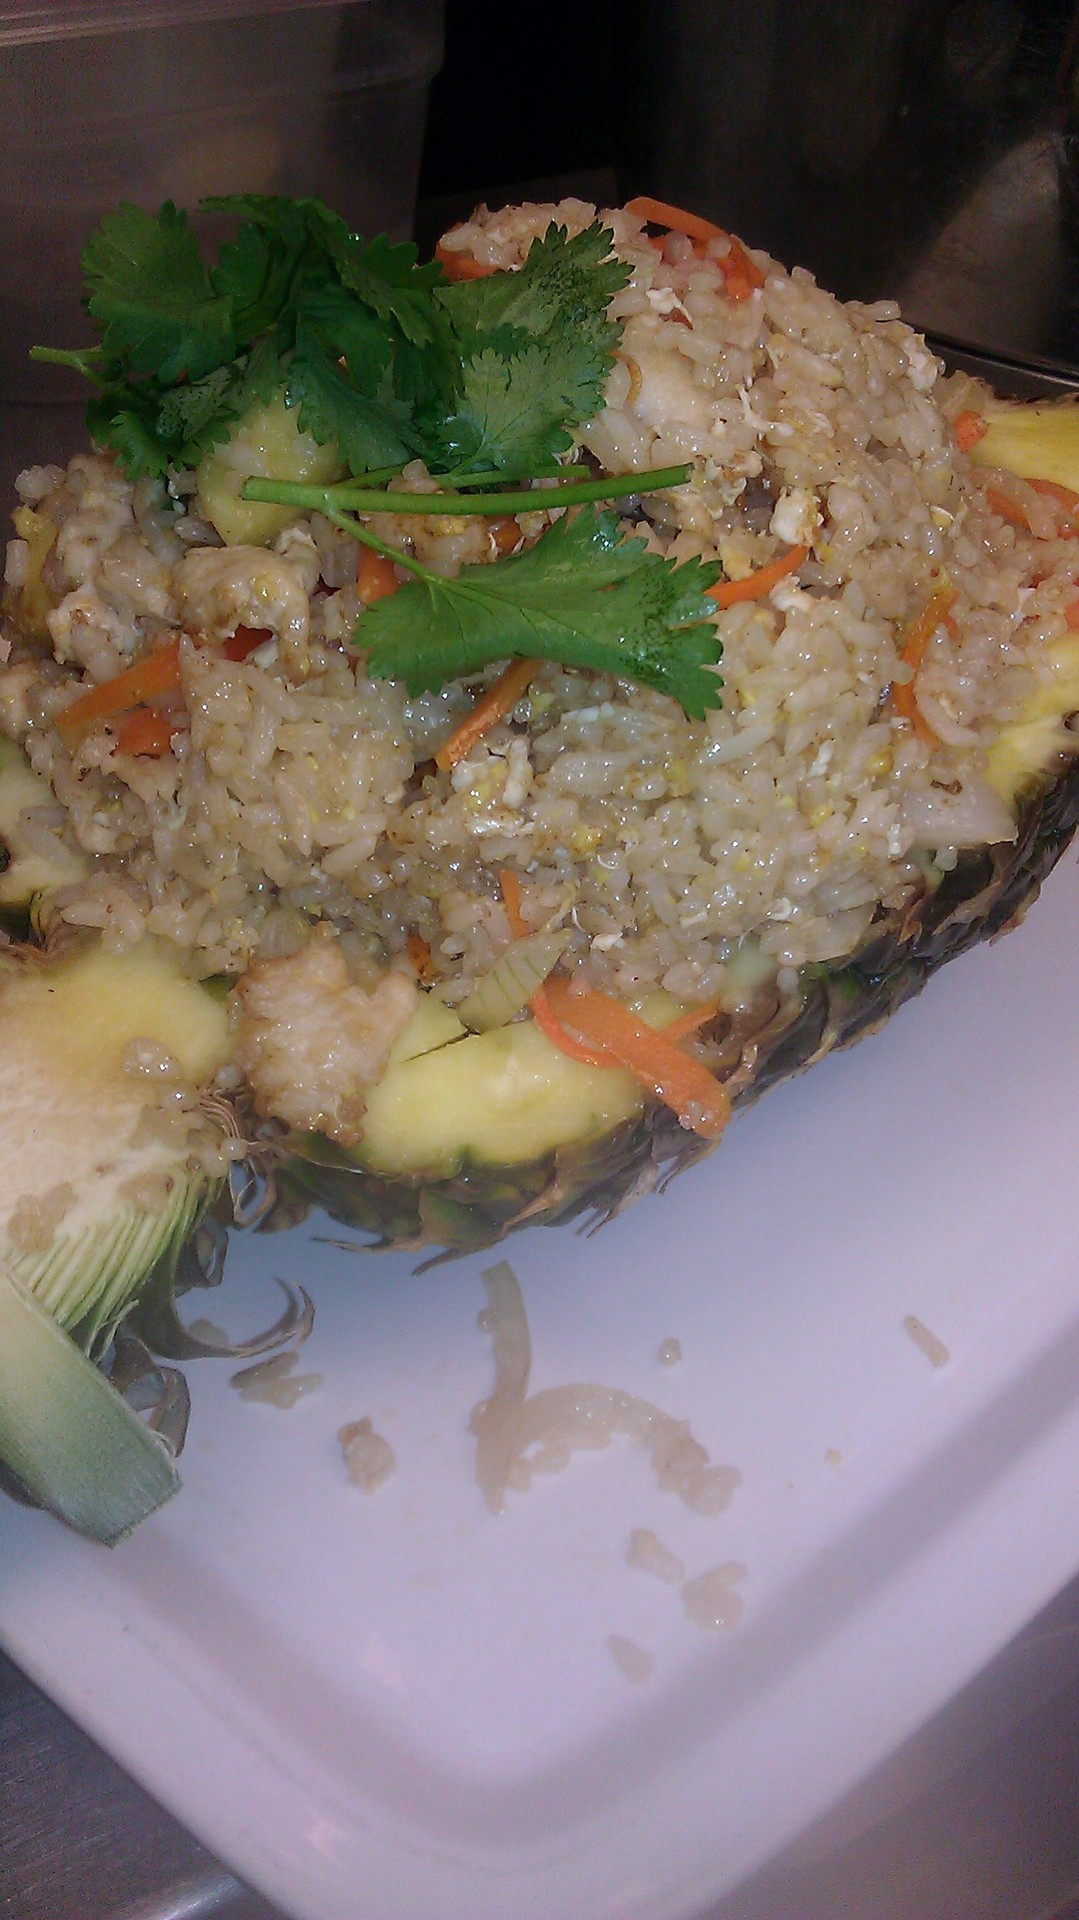 Our Asian Bistro Fried Rice served in a pineapple shell.